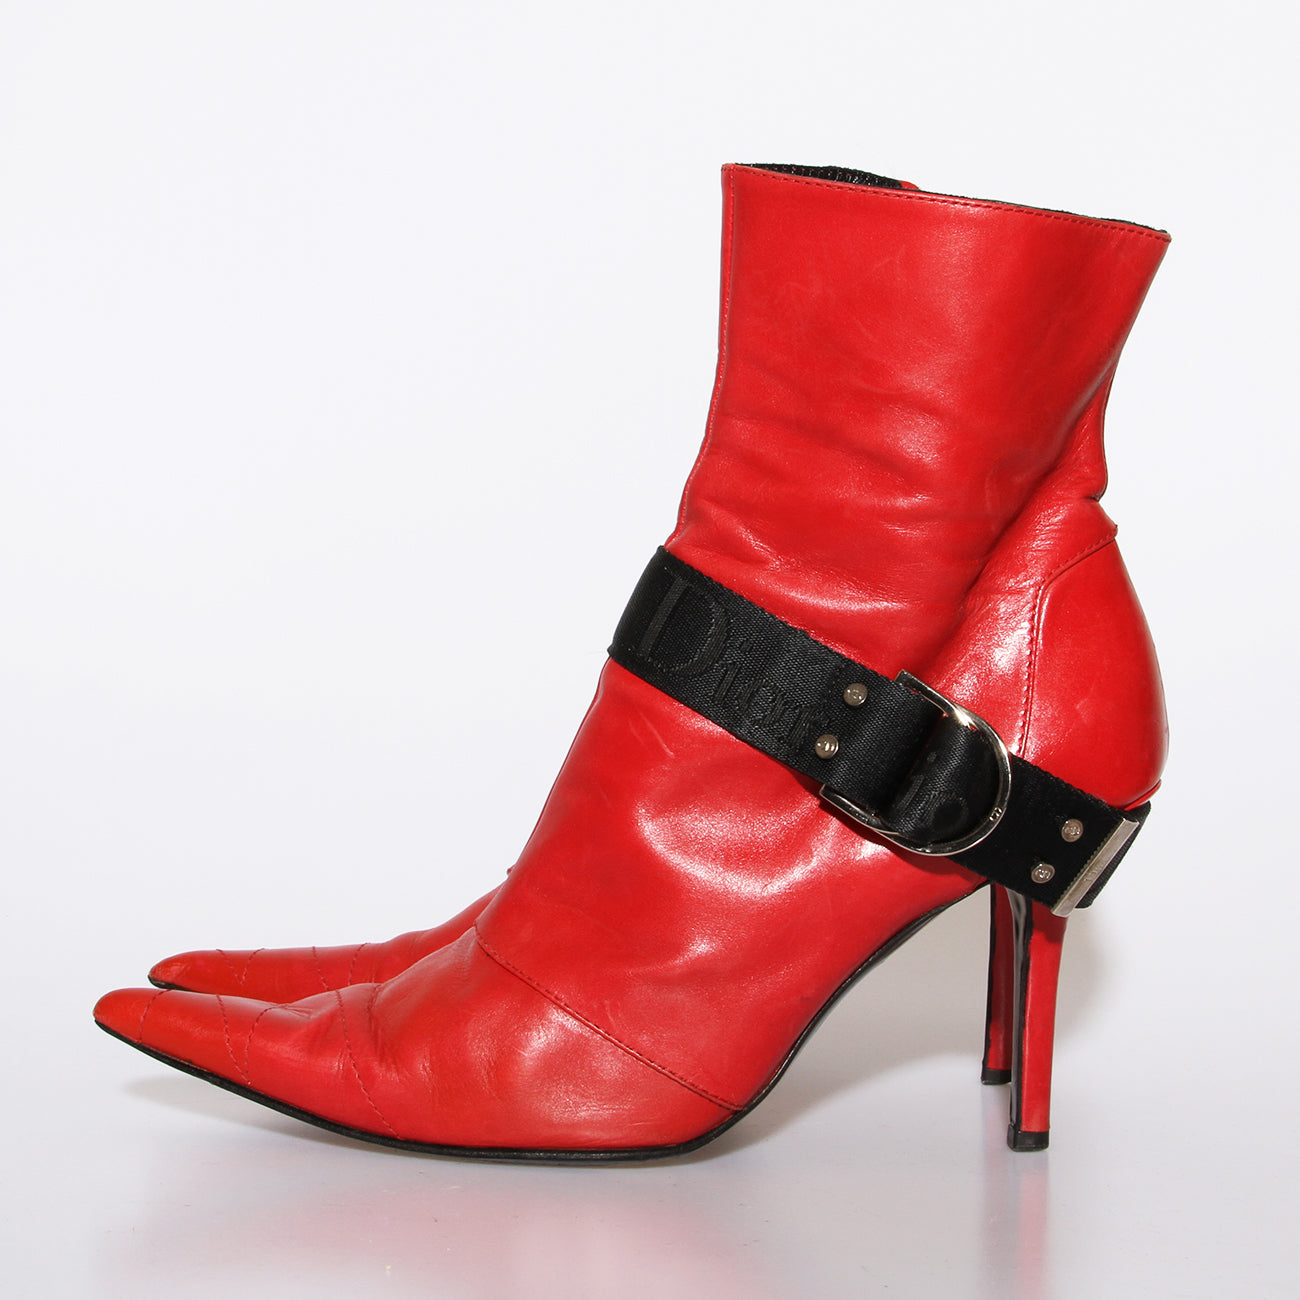 Dior Harness Ankle Boots